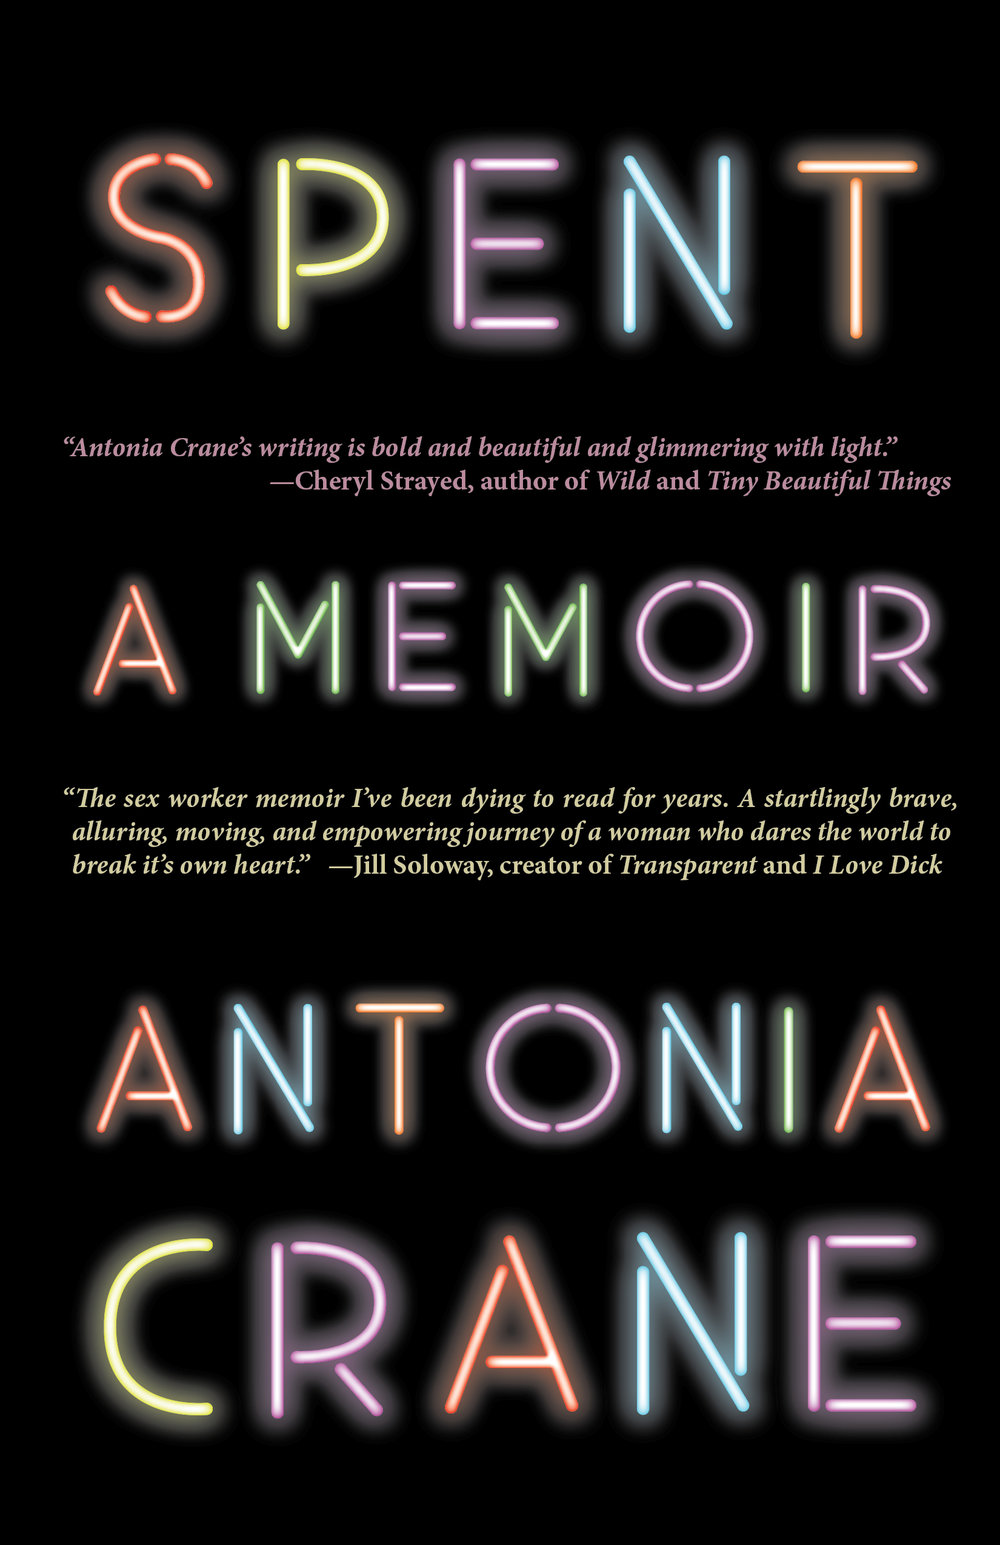 Spent by Antonia Crane A small town girl leaves her troubled family and starts stripping—which introduces her to a community that keeps her sober and saves her life—but a roller-coaster lifestyle ensues. She gets drugged, does enema shows, and unionizes the club. When she tries to quit and go to graduate school, her mother is diagnosed with terminal cancer. Broke and broken, she returns to sex work, which leads to her arrest and a new resilience. Spent is a memoir about a woman's journey through the sex industry, but it's also a story of family, community, and the constant struggle against loneliness.